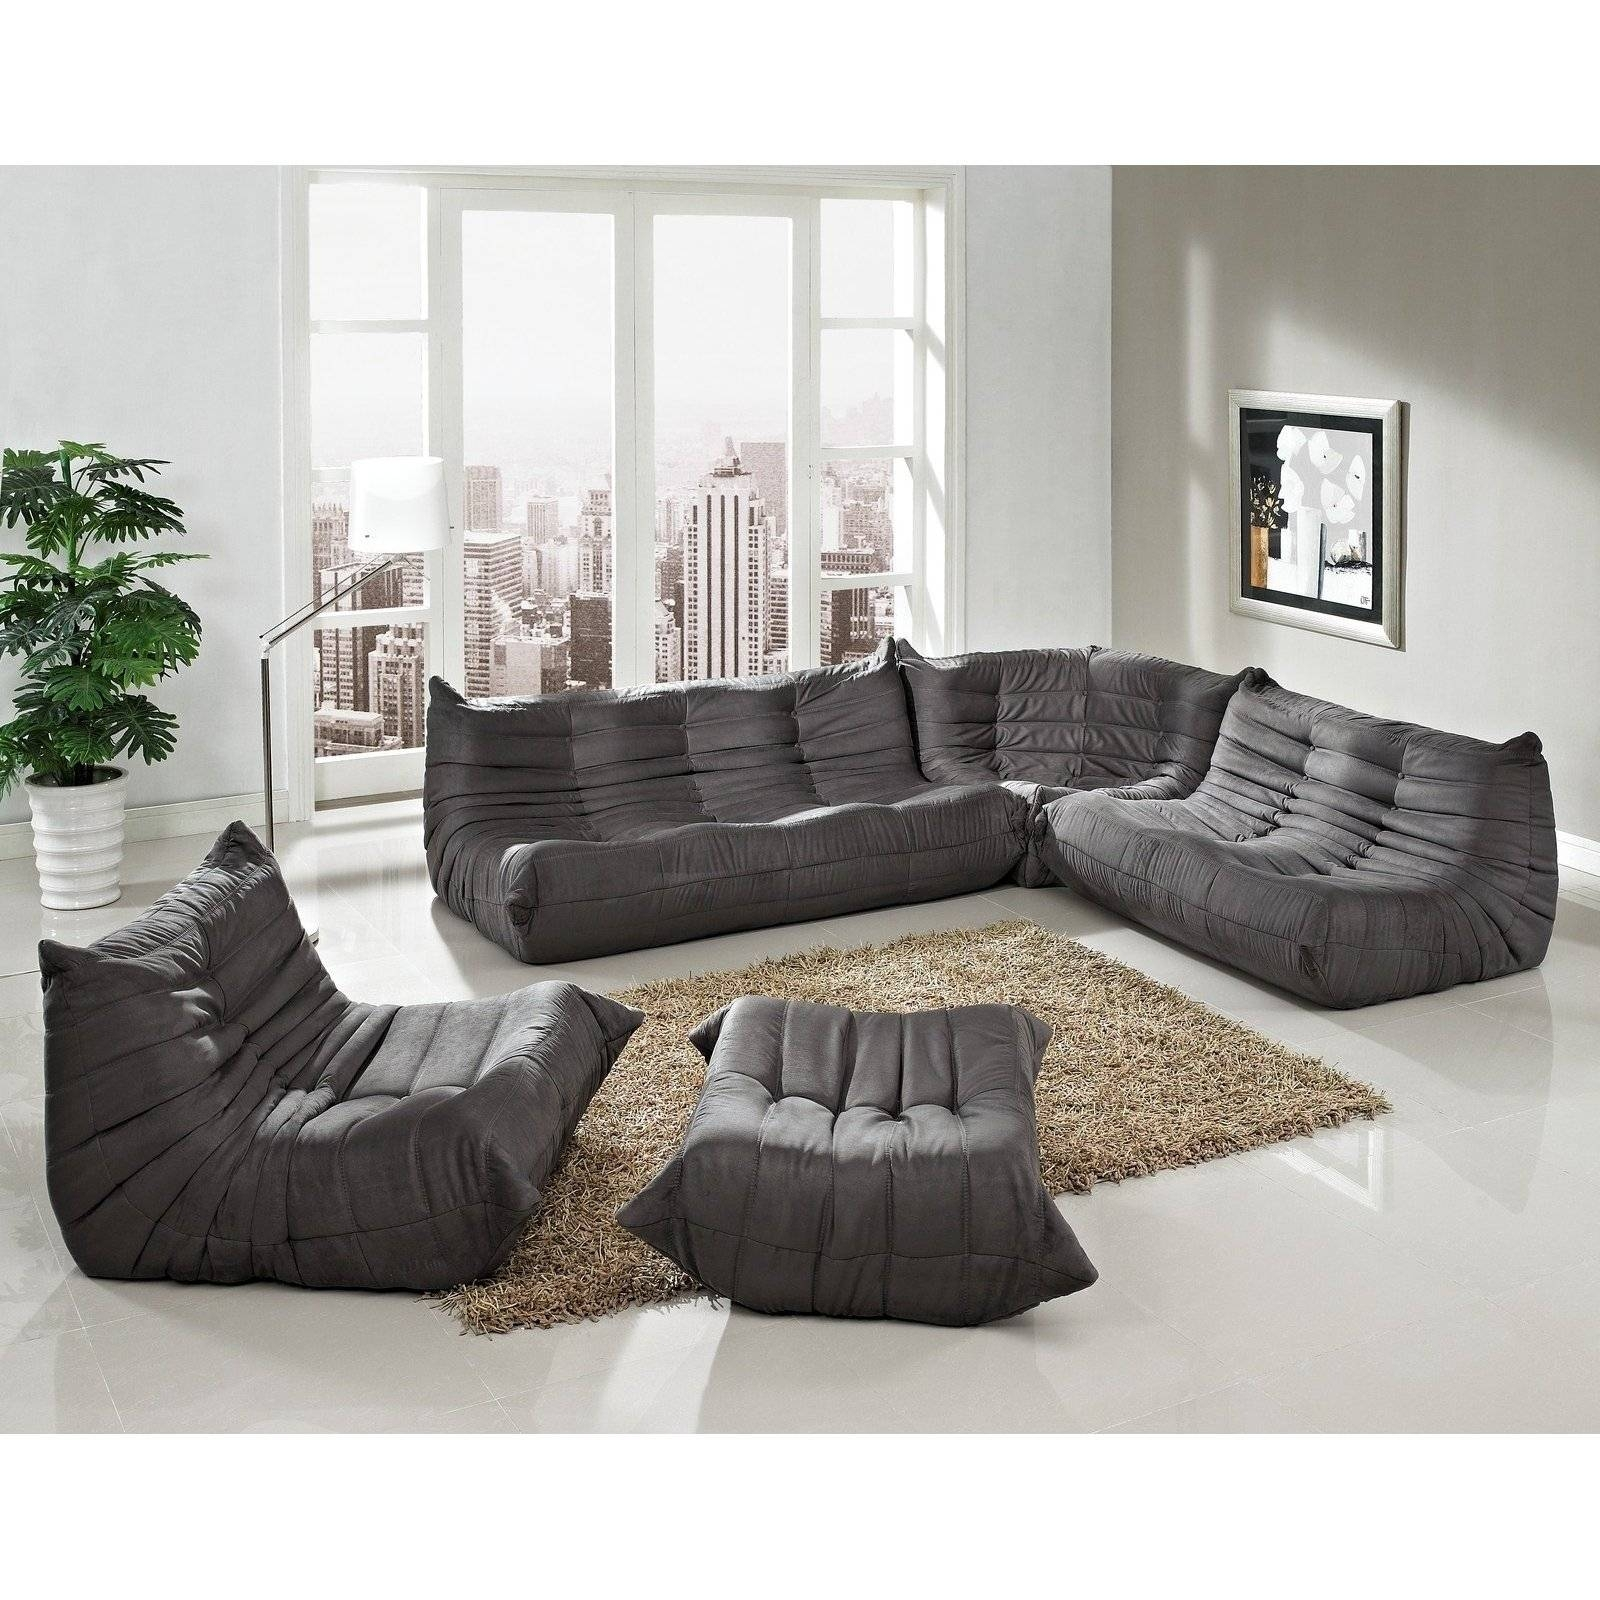 Living Room : Furniture Living Room And Black Leather Upholstery in Purple Ottoman Coffee Tables (Image 16 of 30)